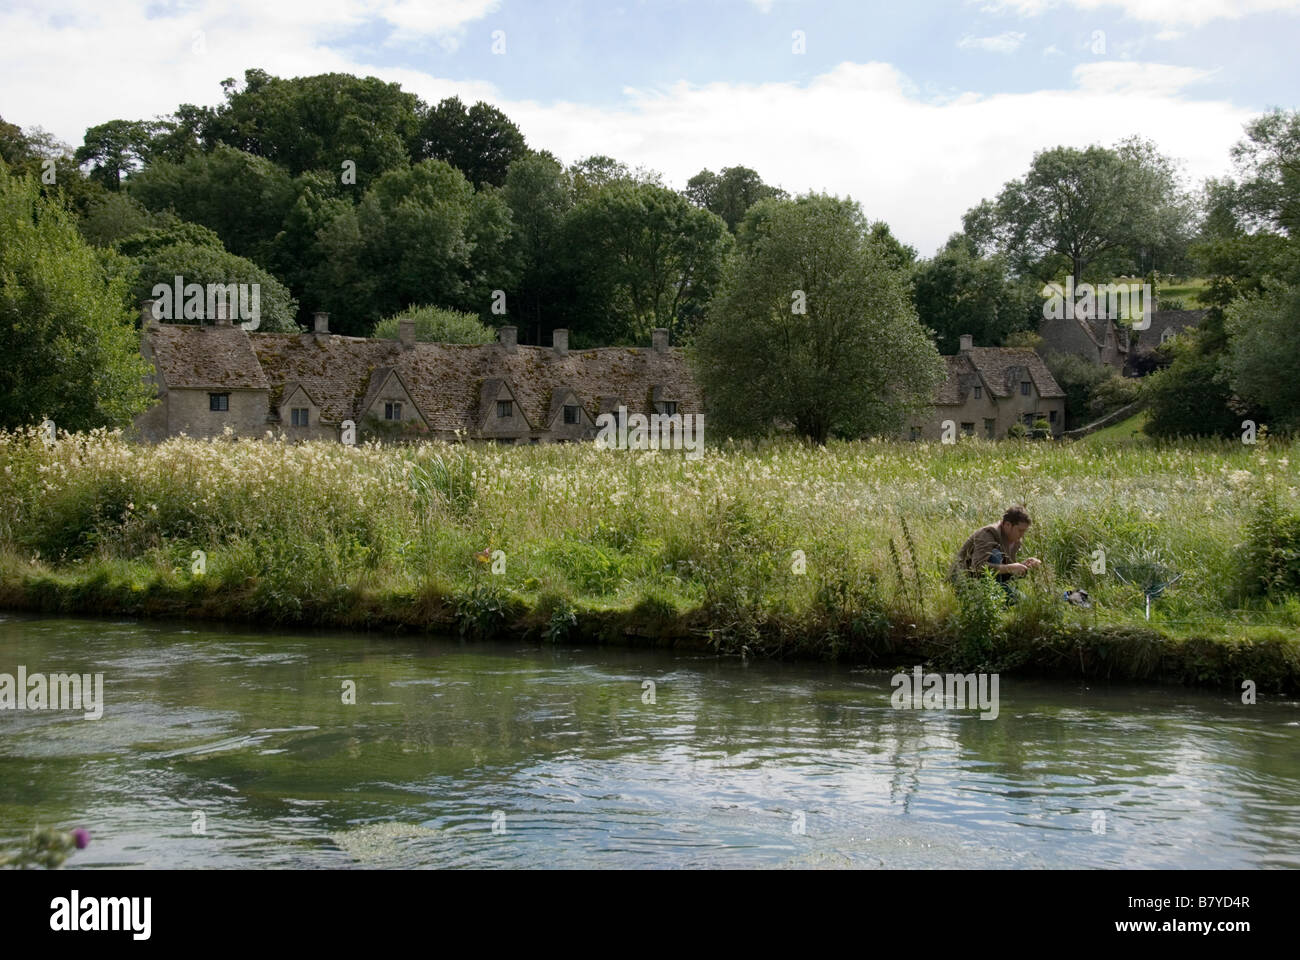 The Famous cottages of Arlington Row with a Trout Fisherman fishing in the river. - Stock Image